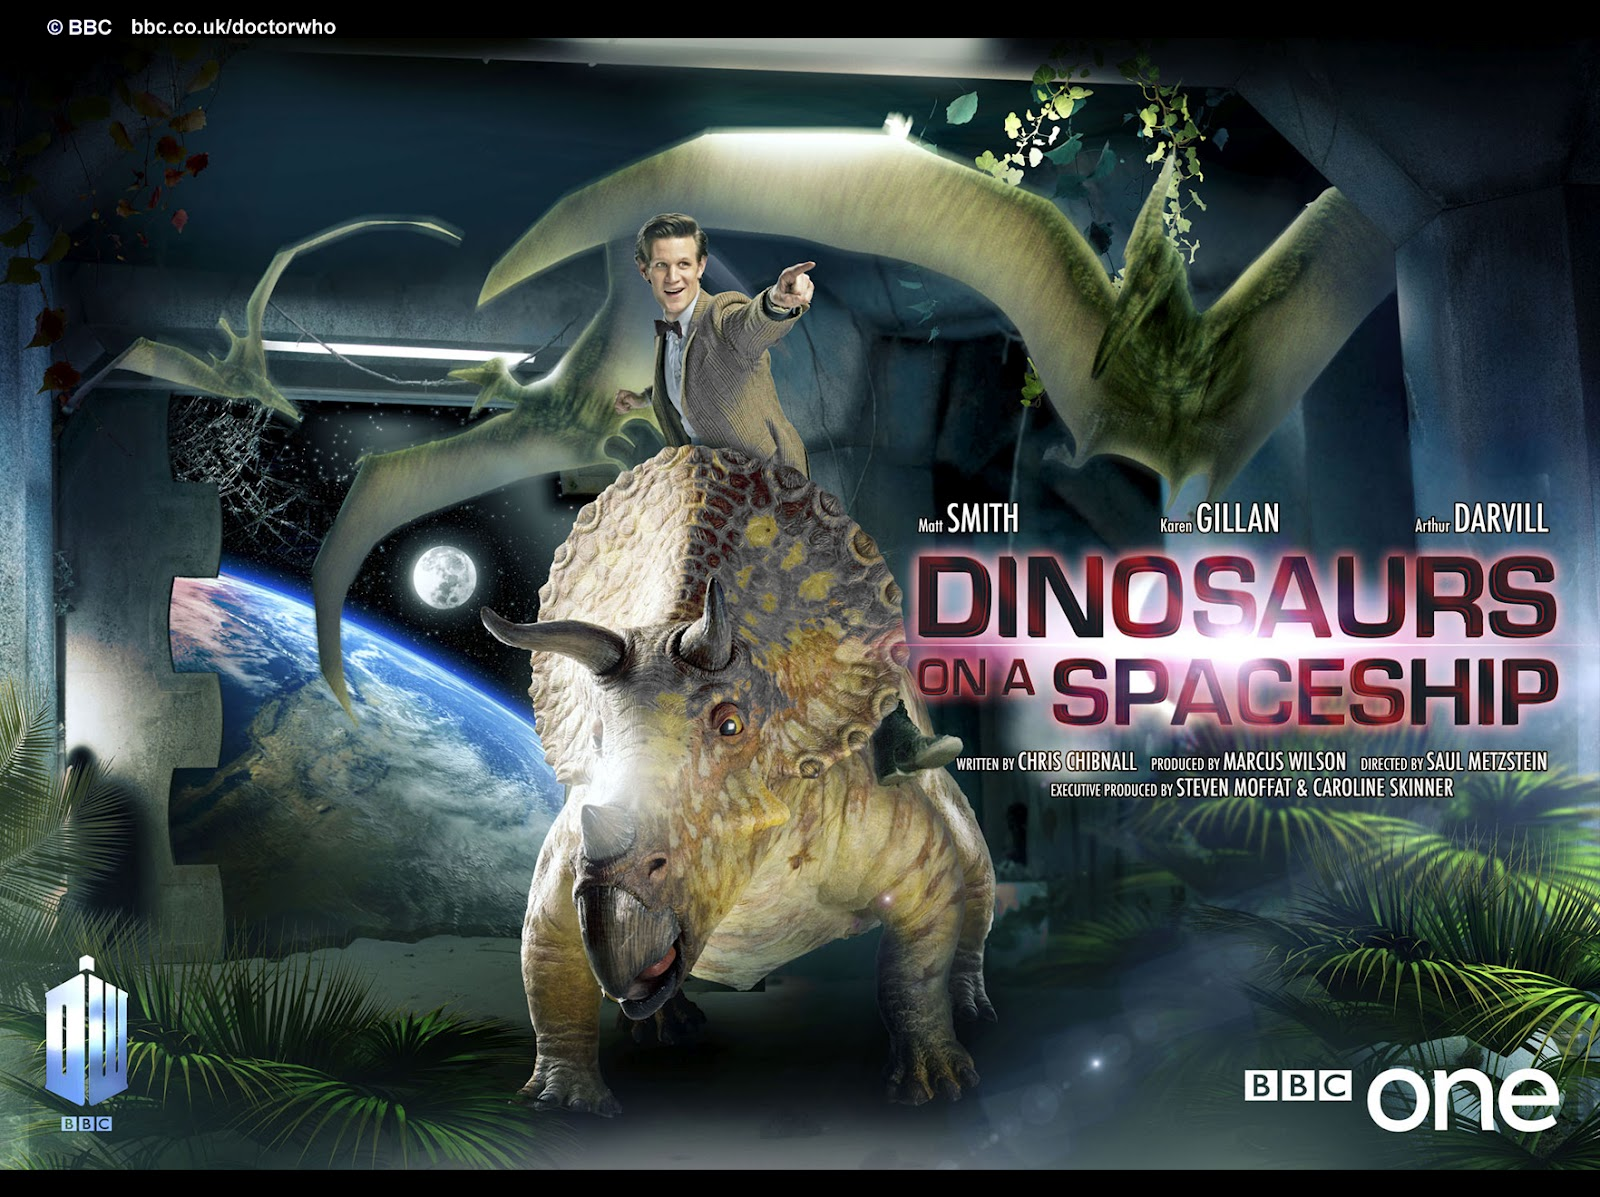 The Rued Morgue: Doctor Who: Dinosaurs on a Spaceship